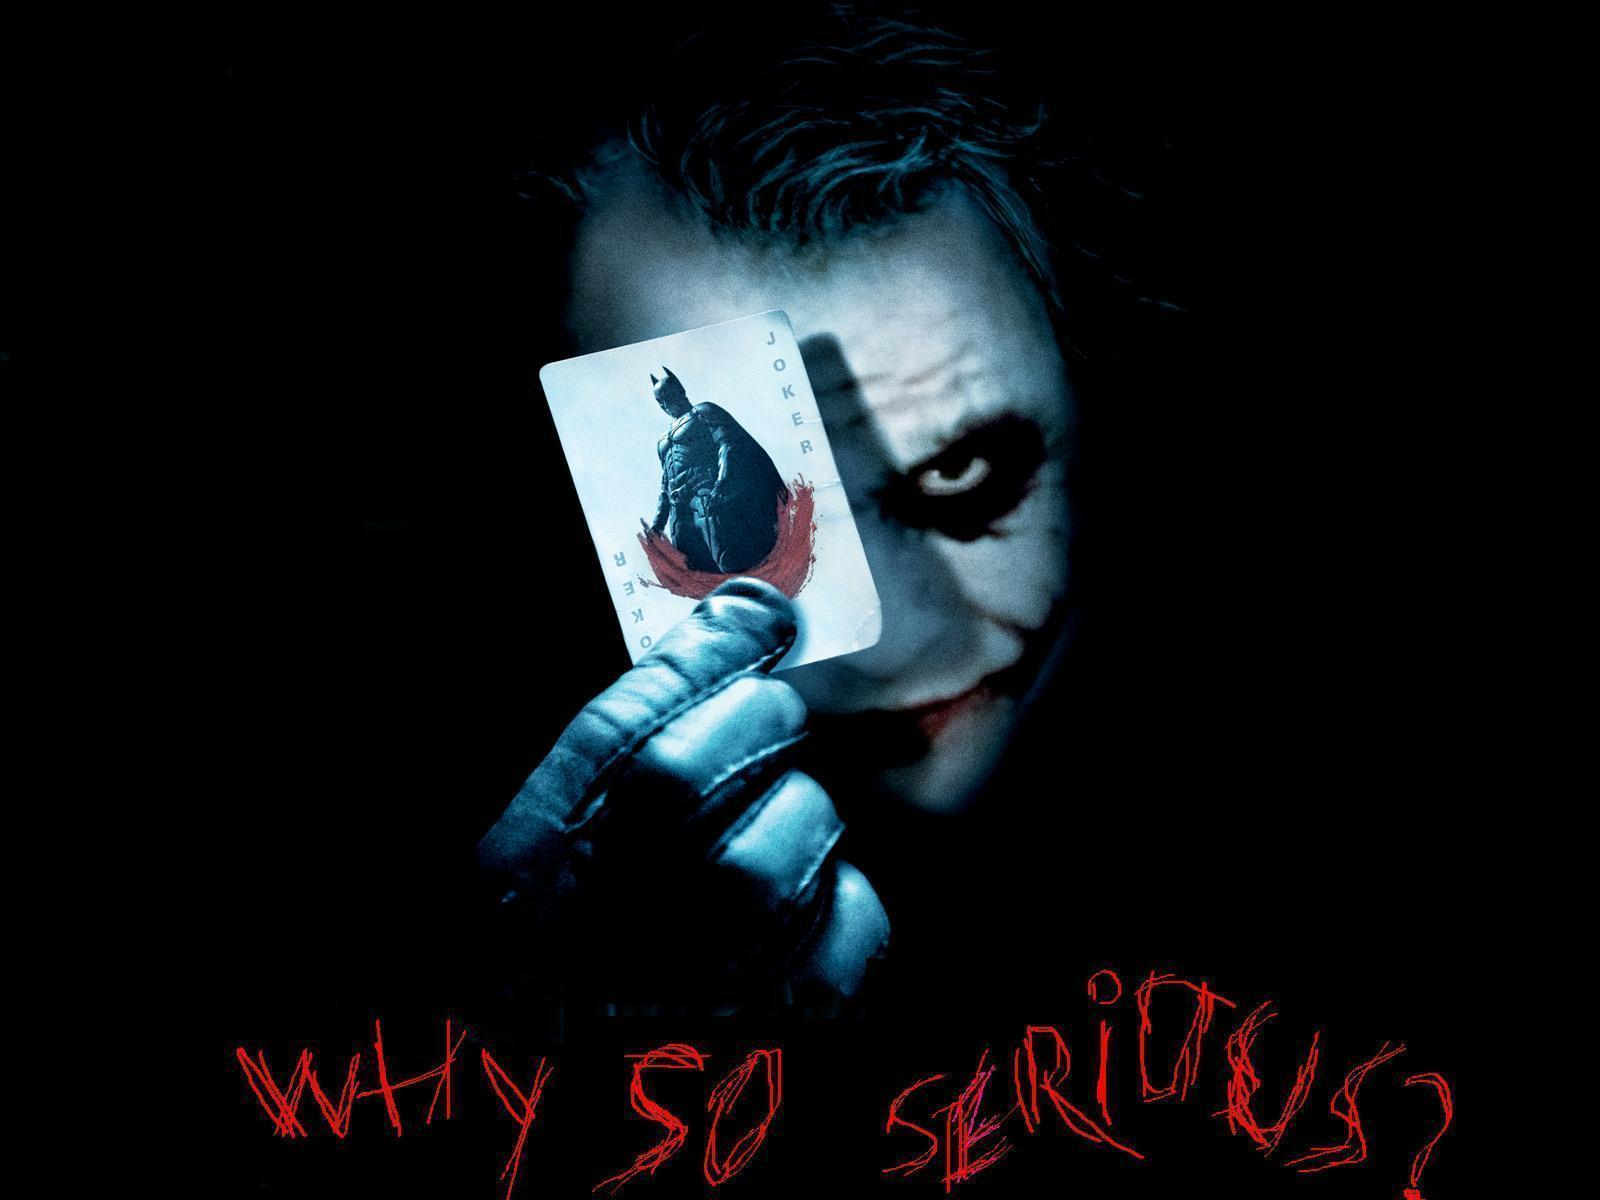 Logo logo wallpaper collection why so serious wallpaper poster